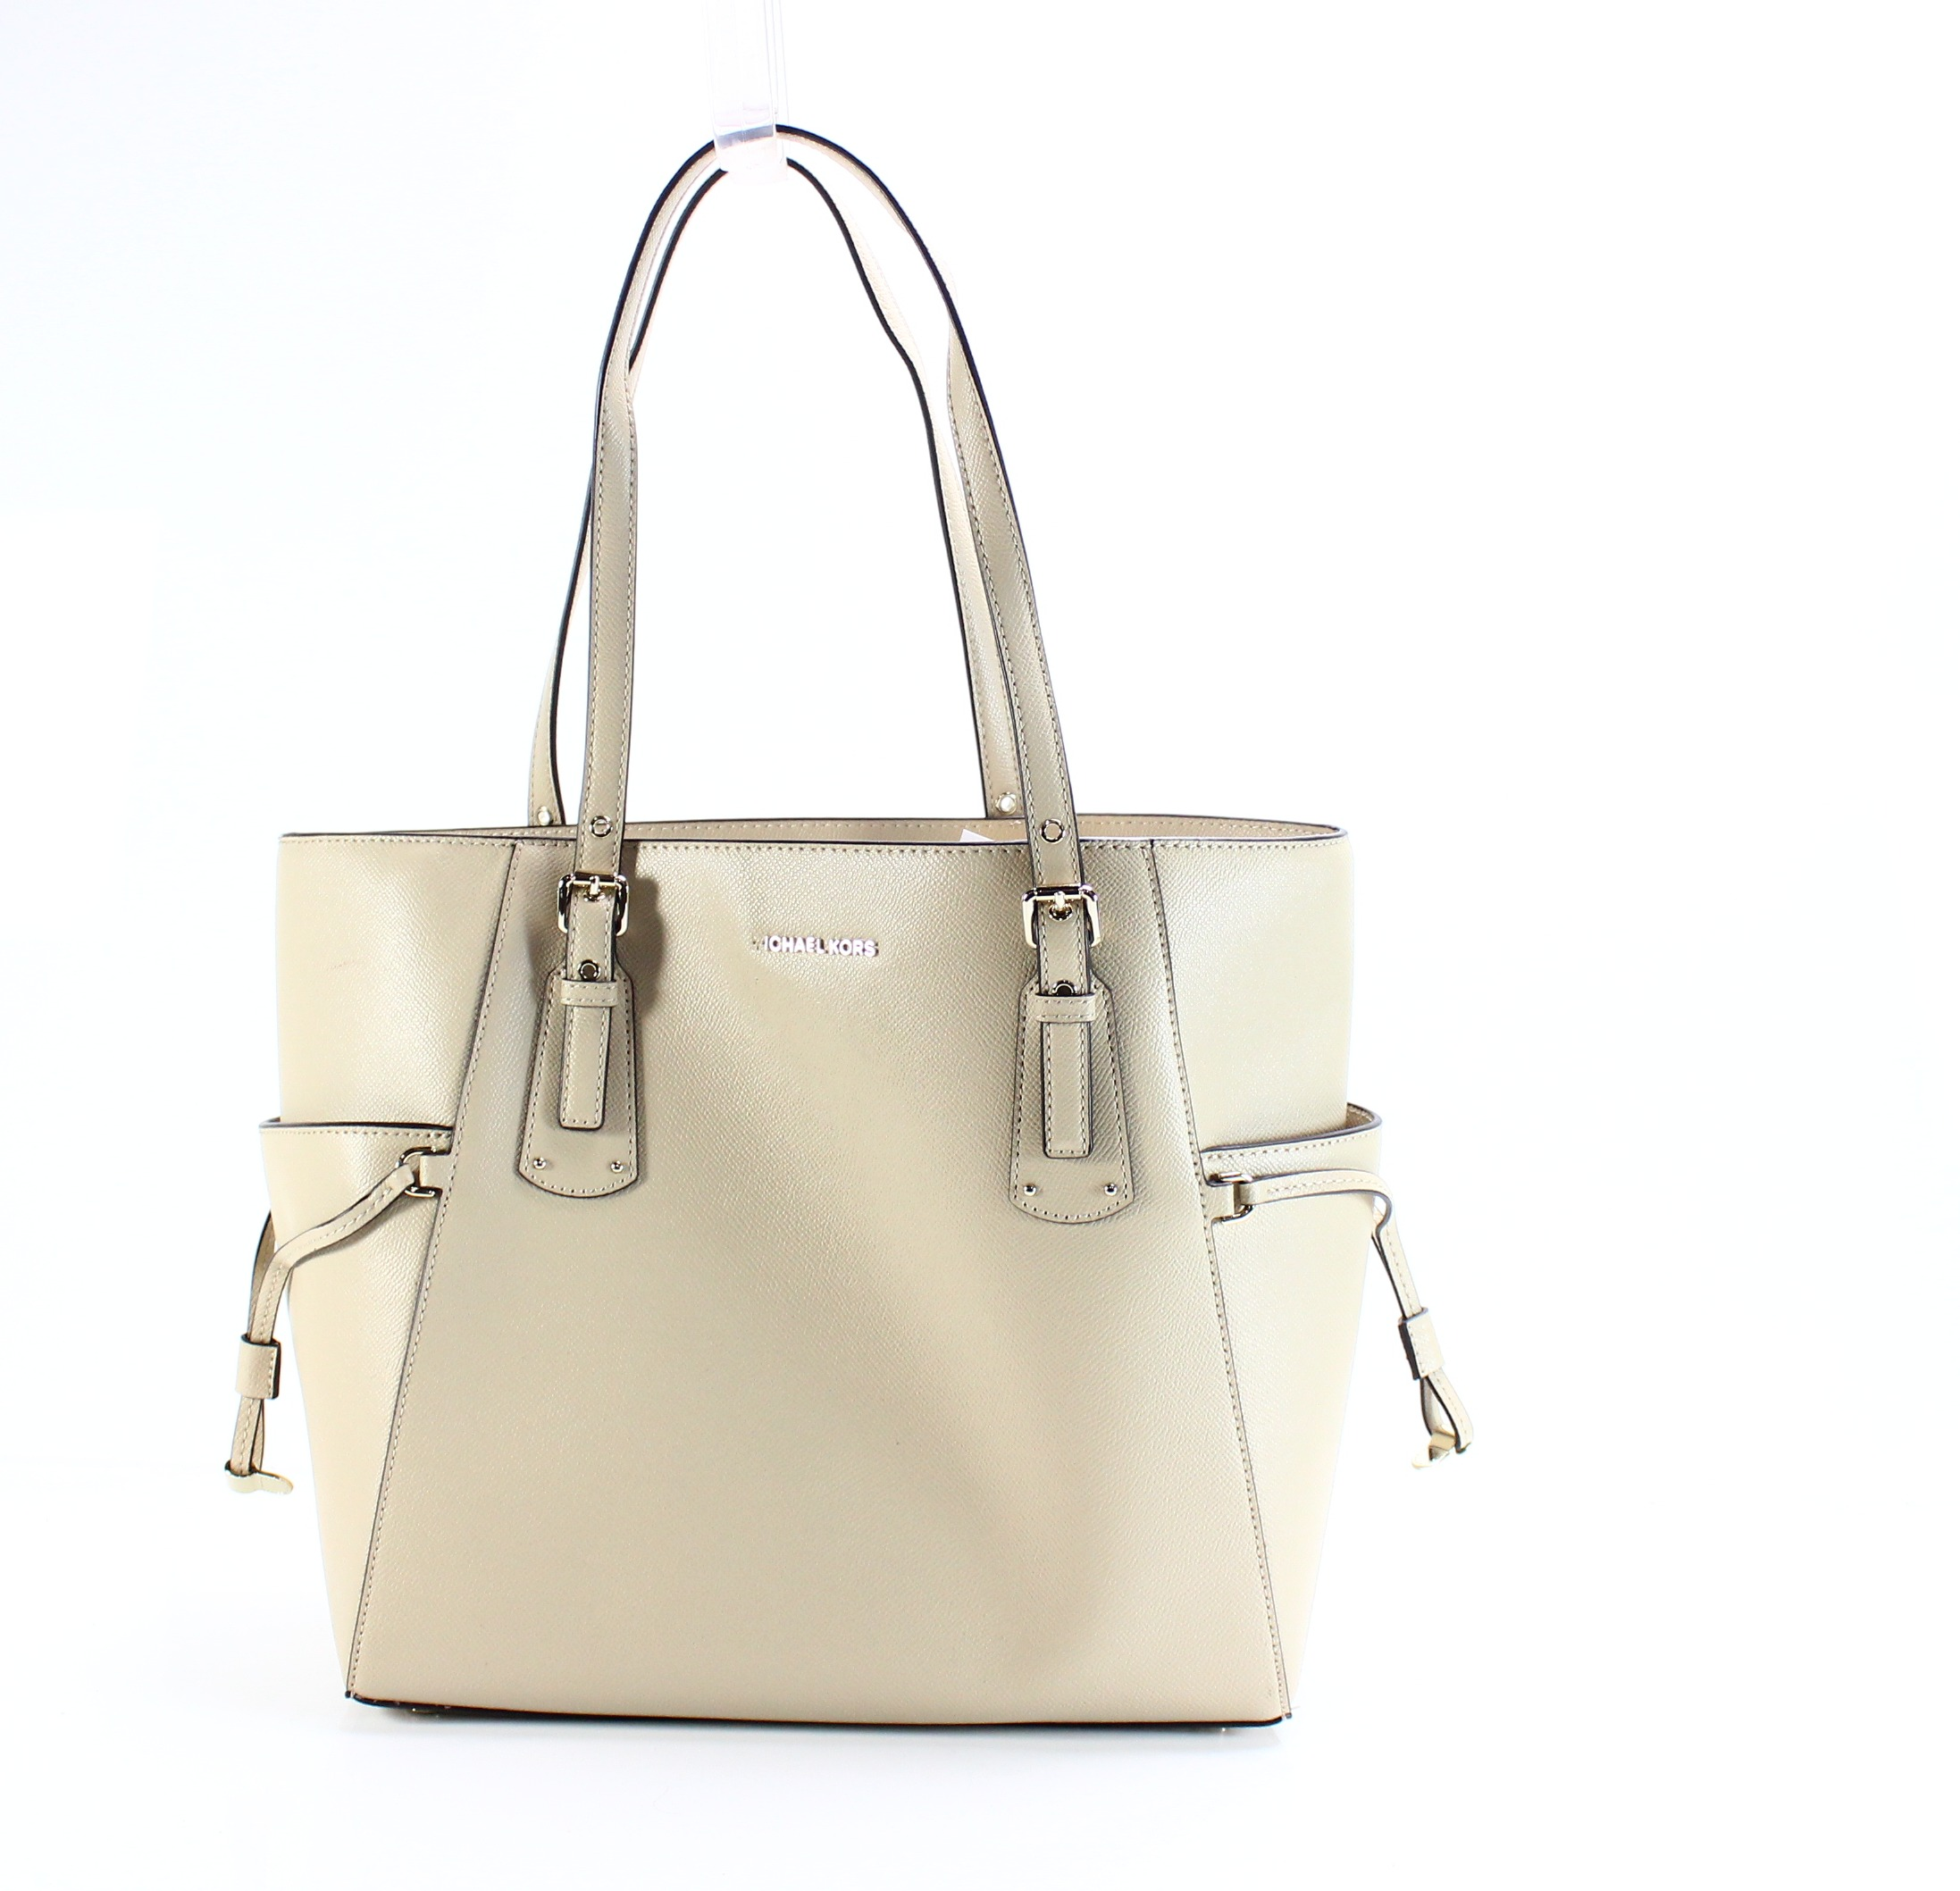 db5bc33e2a50 Details about Michael Kors NEW Beige Oat Gold Voyager EW MEdium Tote  Leather Purse $228- #013